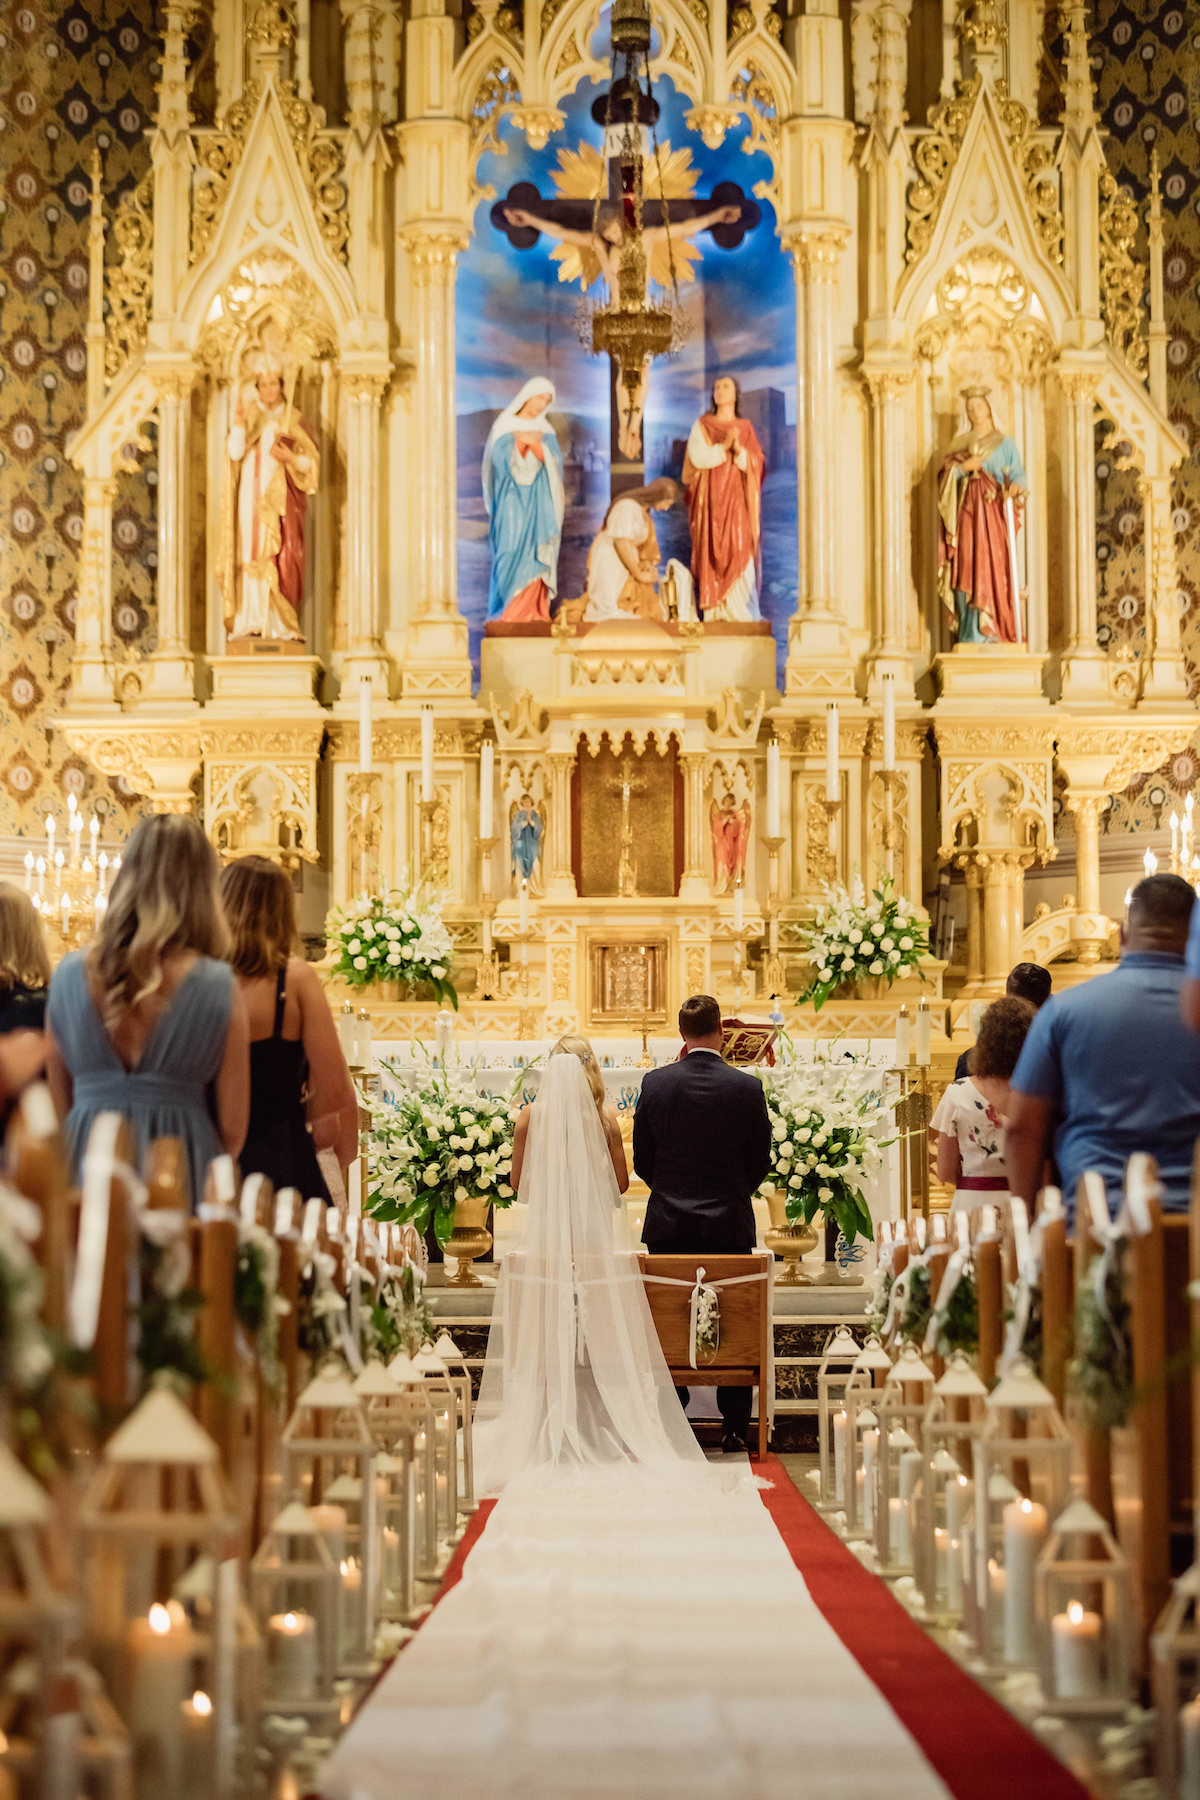 Church wedding ceremony - Photography: Charming Images